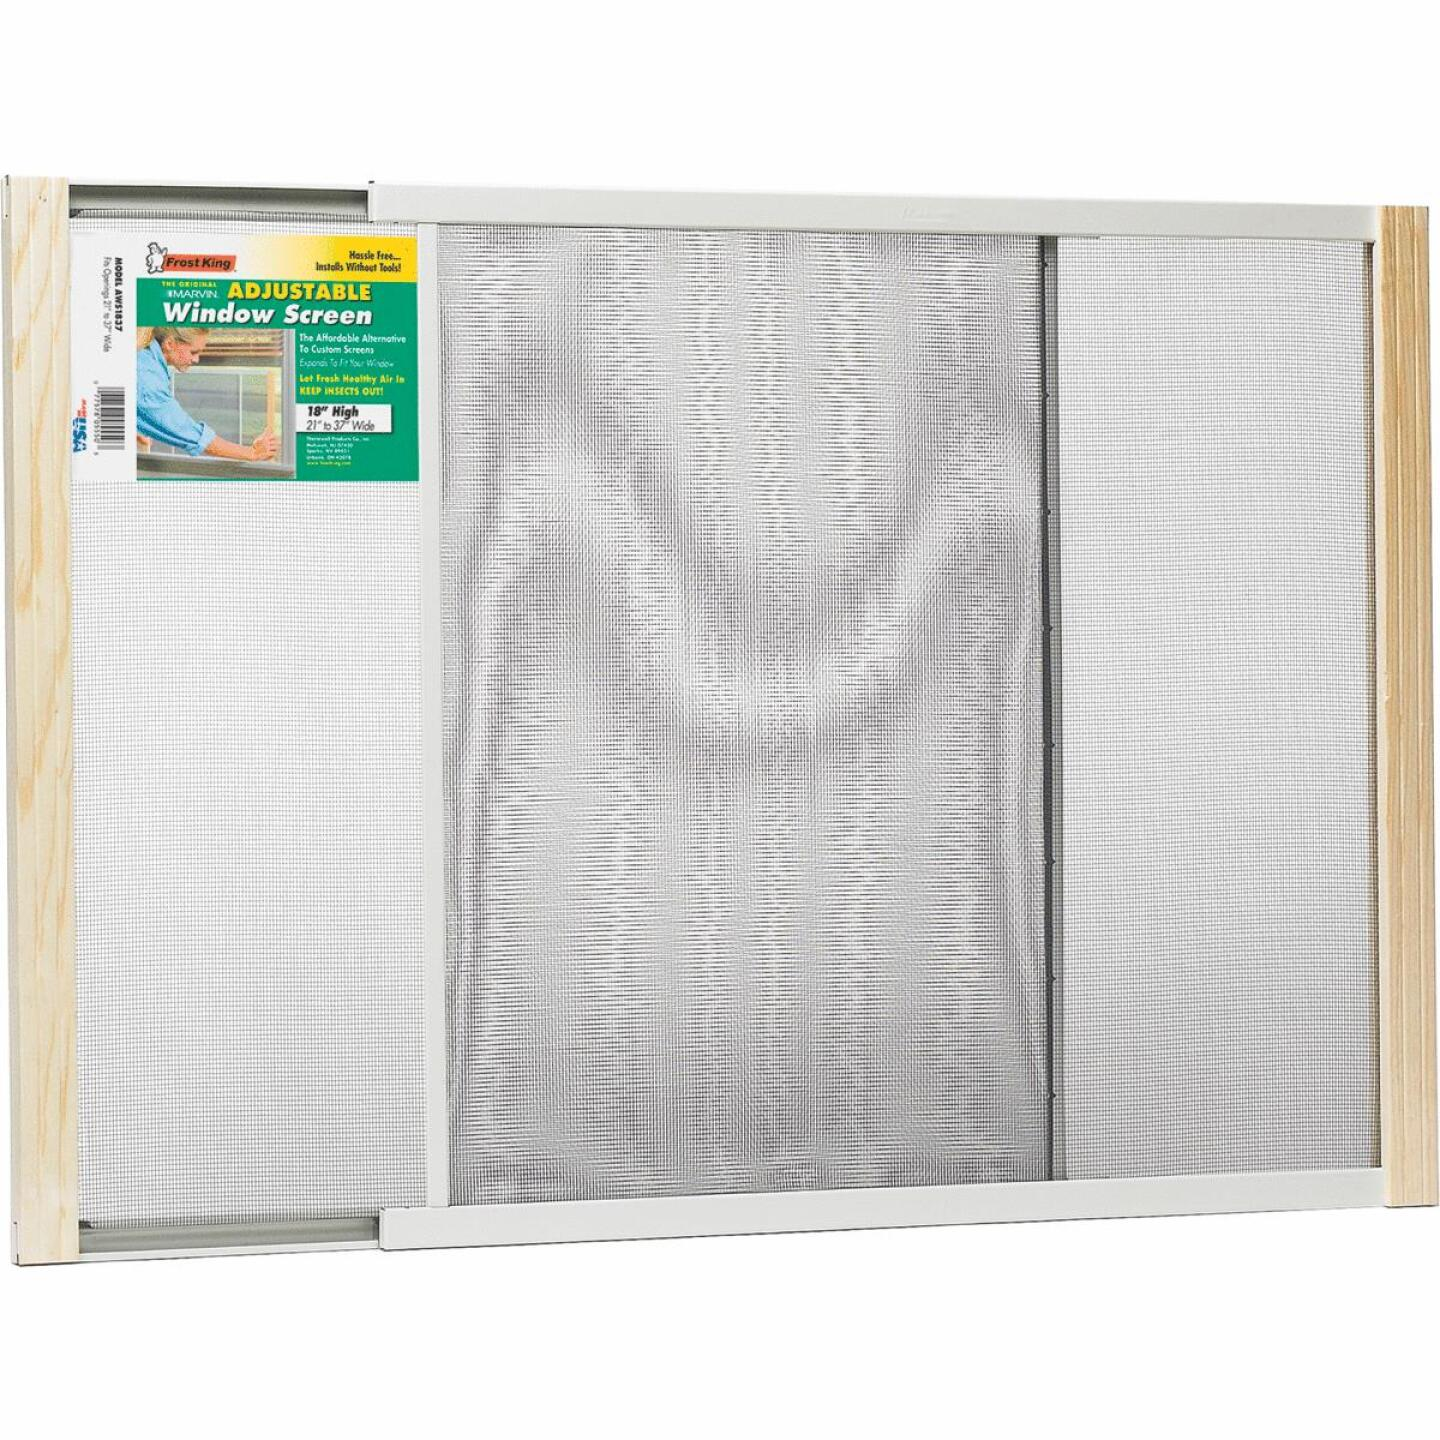 Frost King 21 to 37 In. W. x 18 In. H. Adjustable Metal Rail Screen Image 1